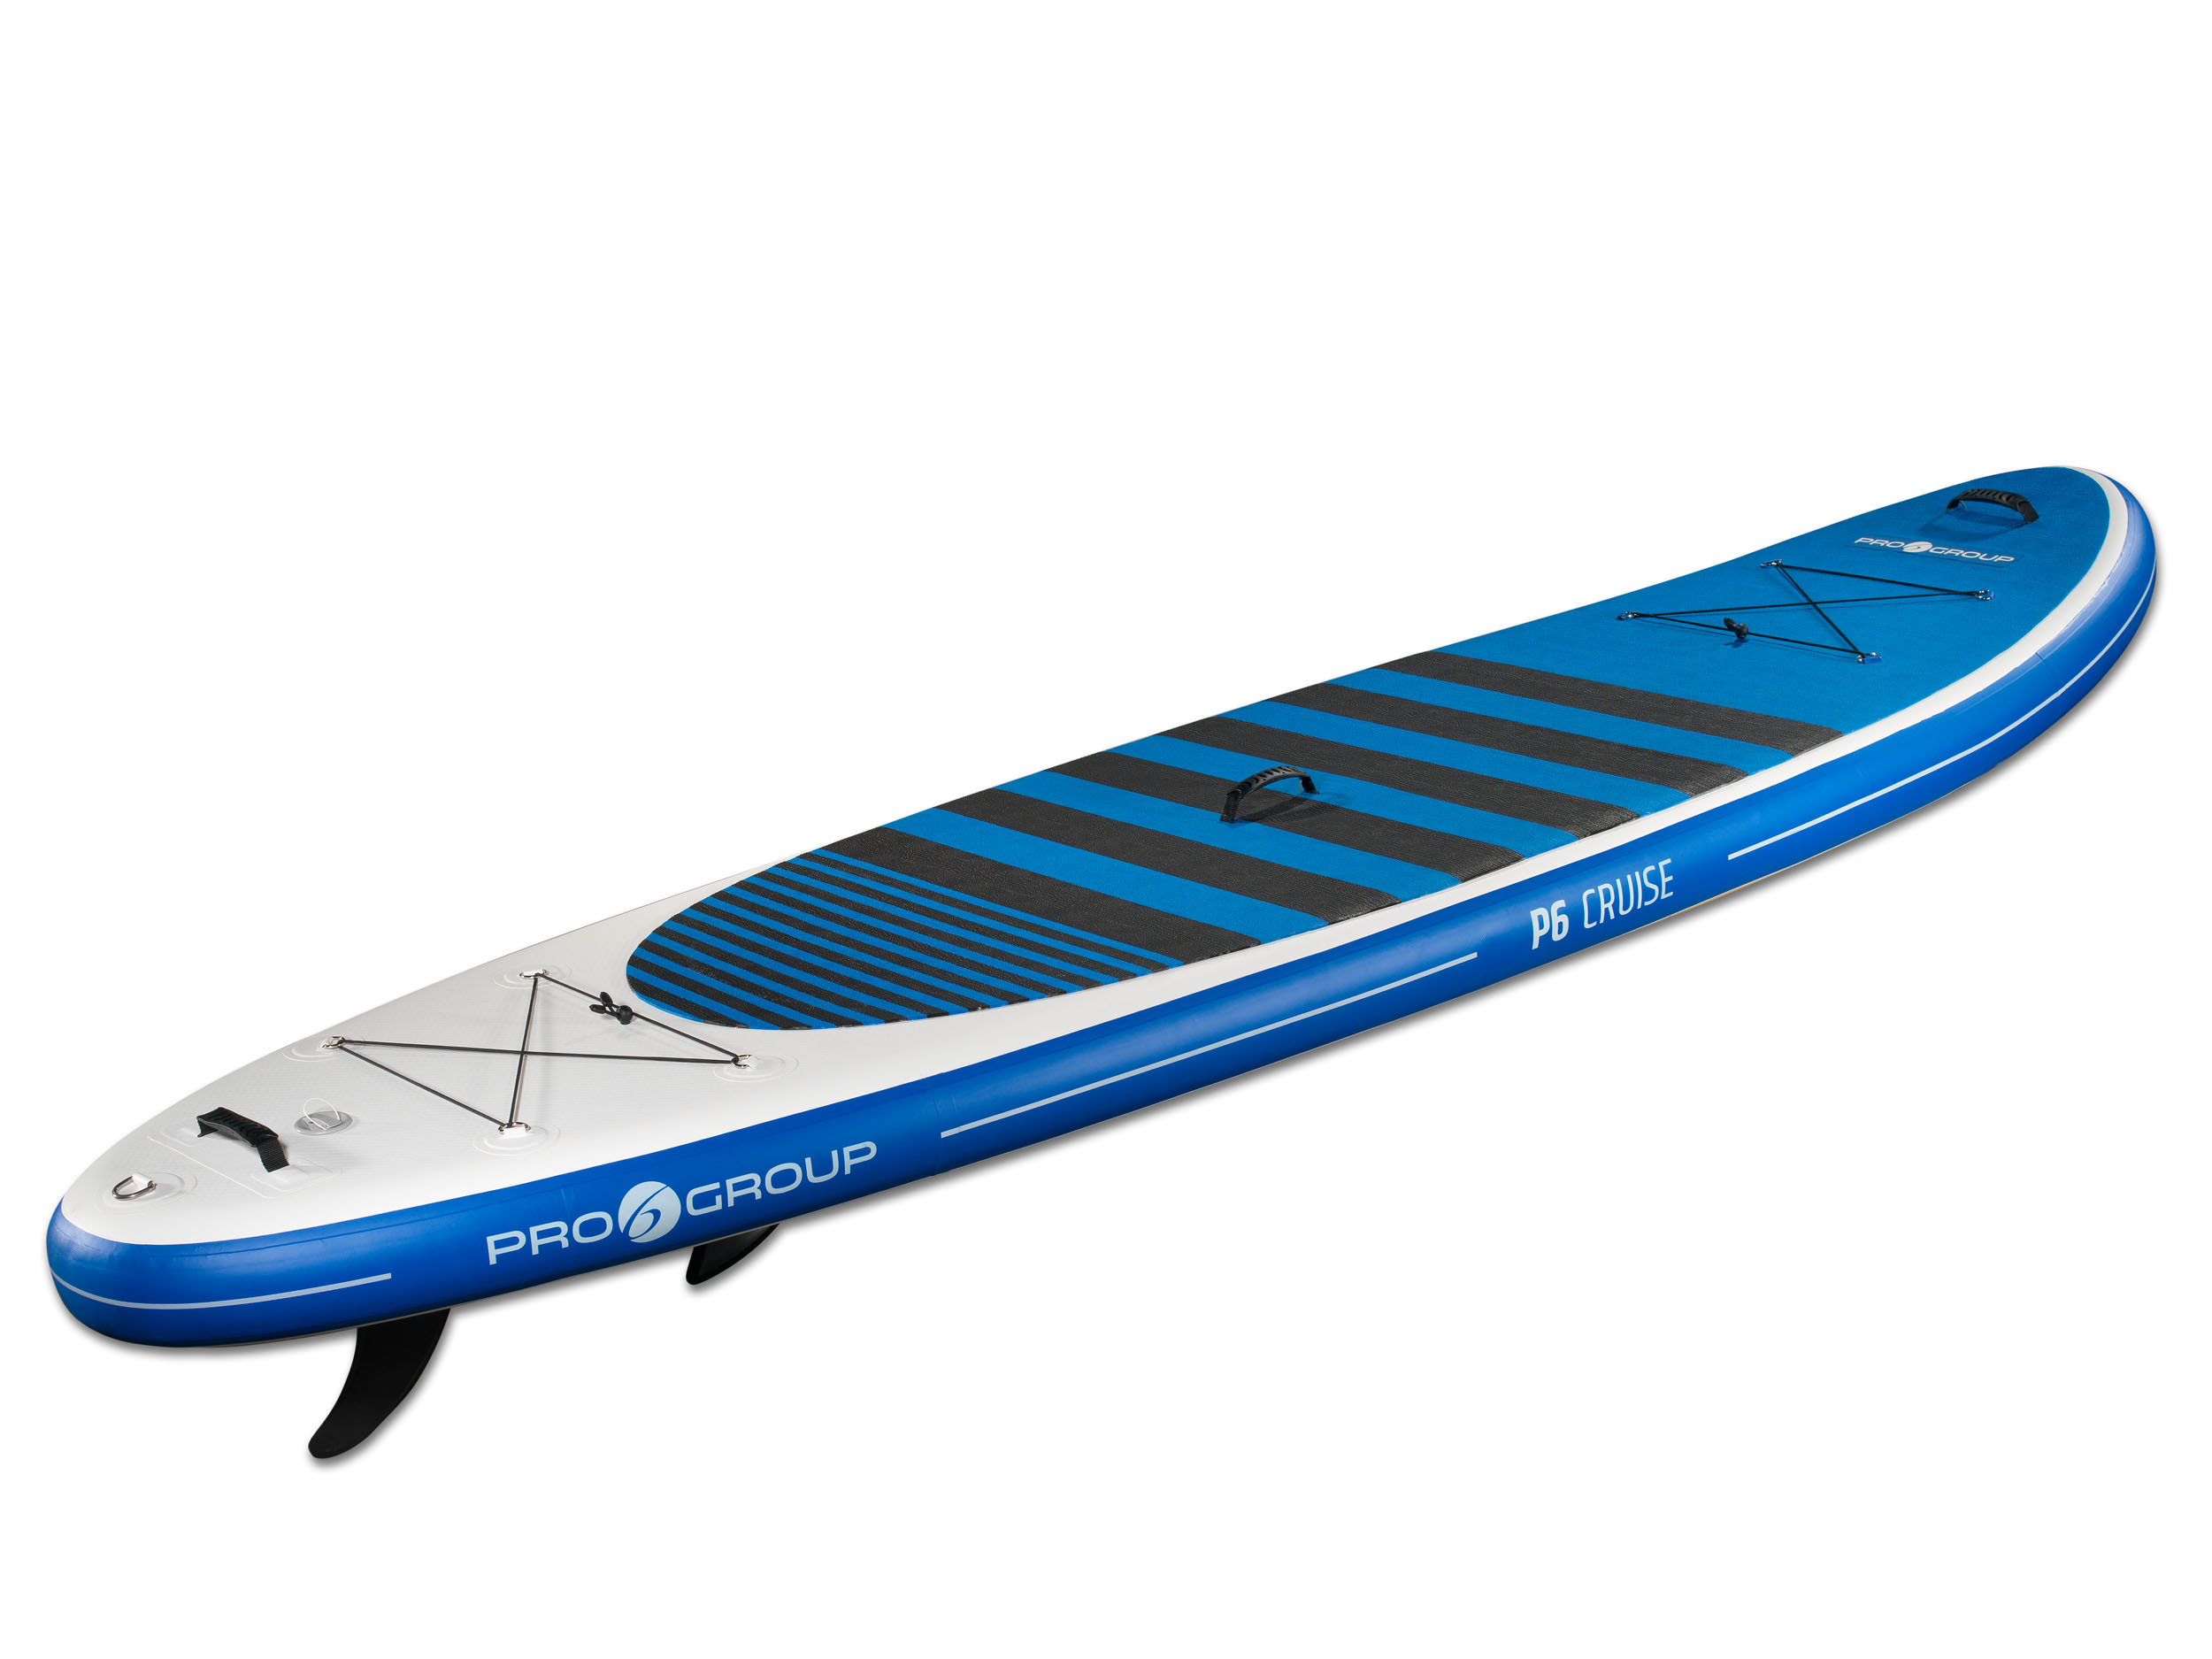 "Click here to buy Pro 6, P6-Cruise, ISUP Inflatable Stand-Up Paddle Board 11'2""x35""x6� by Pro 6."